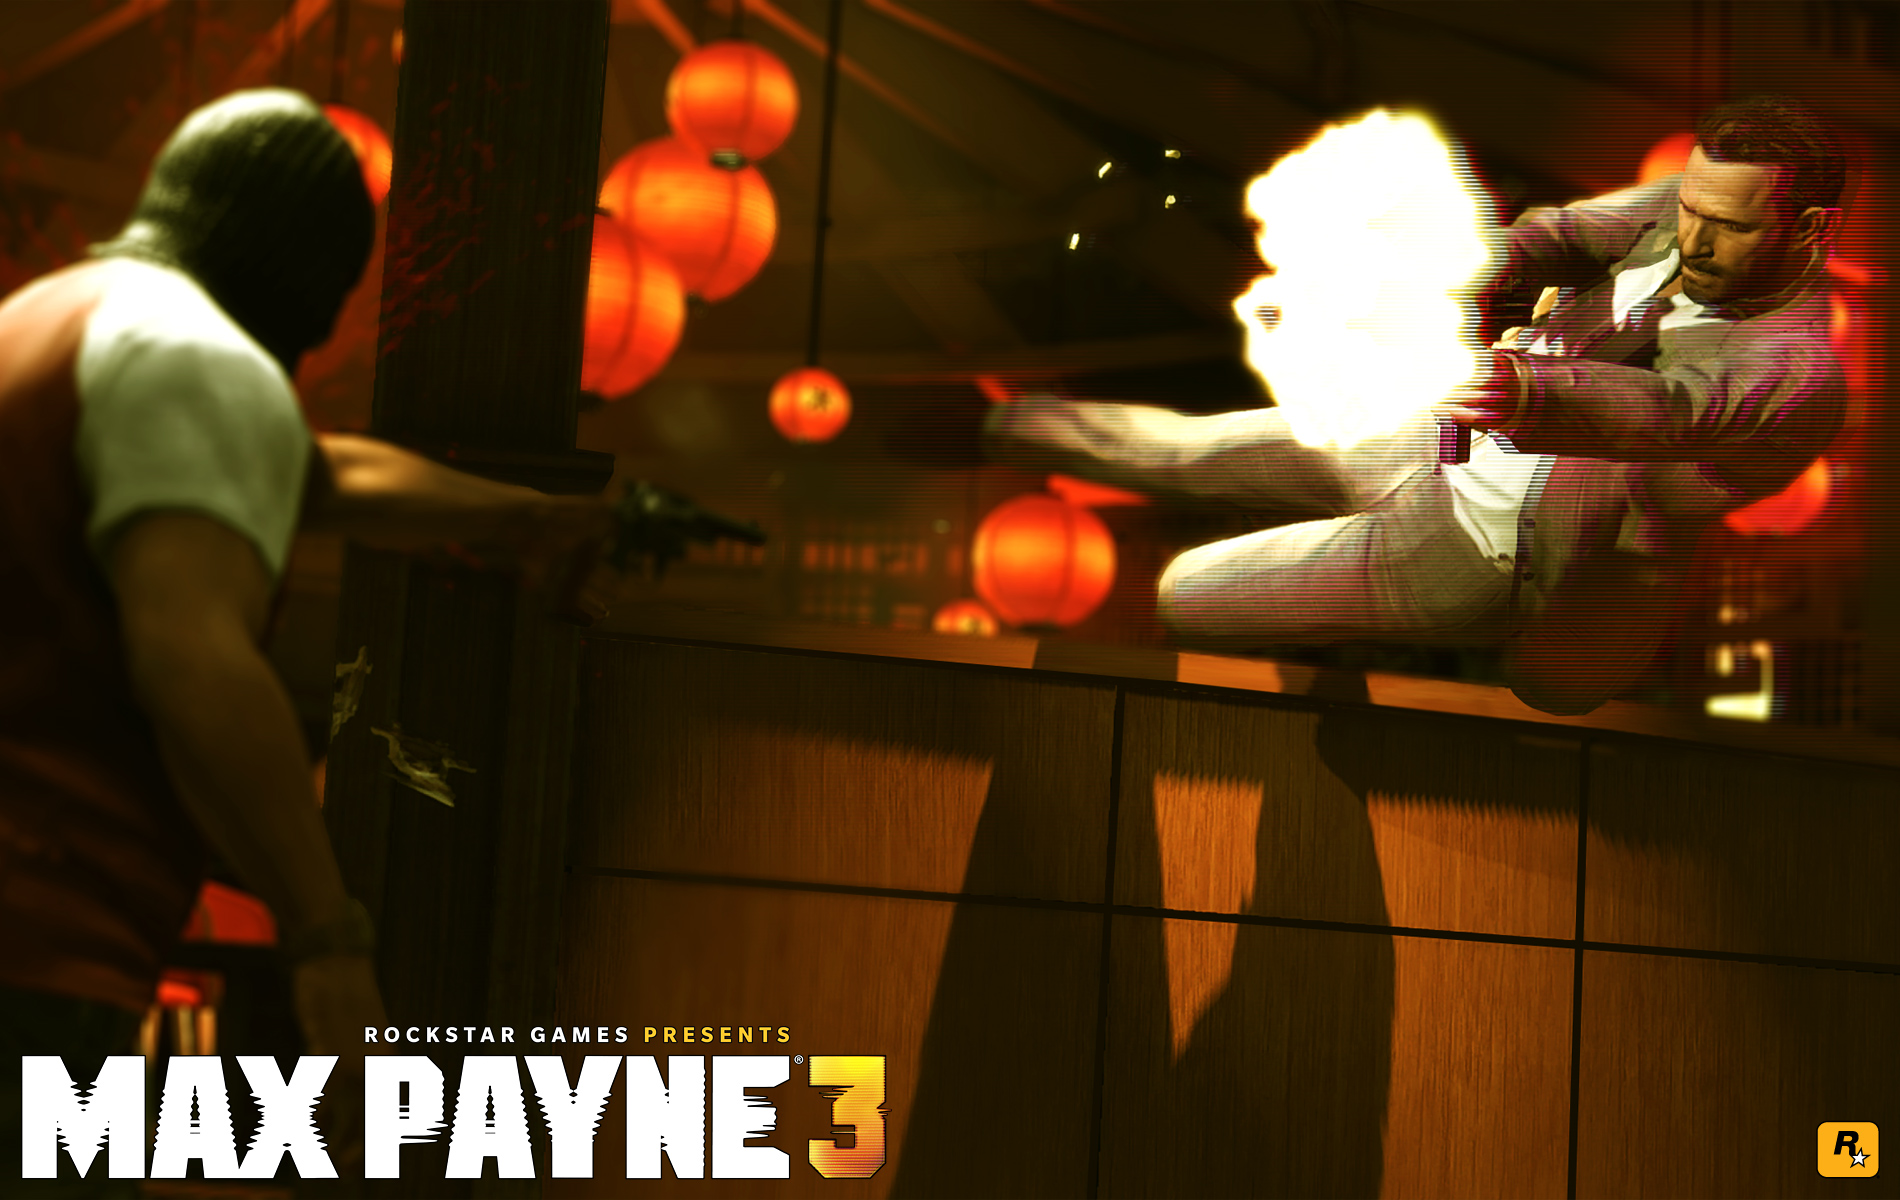 Max Payne 3 Shootout Wallpaper